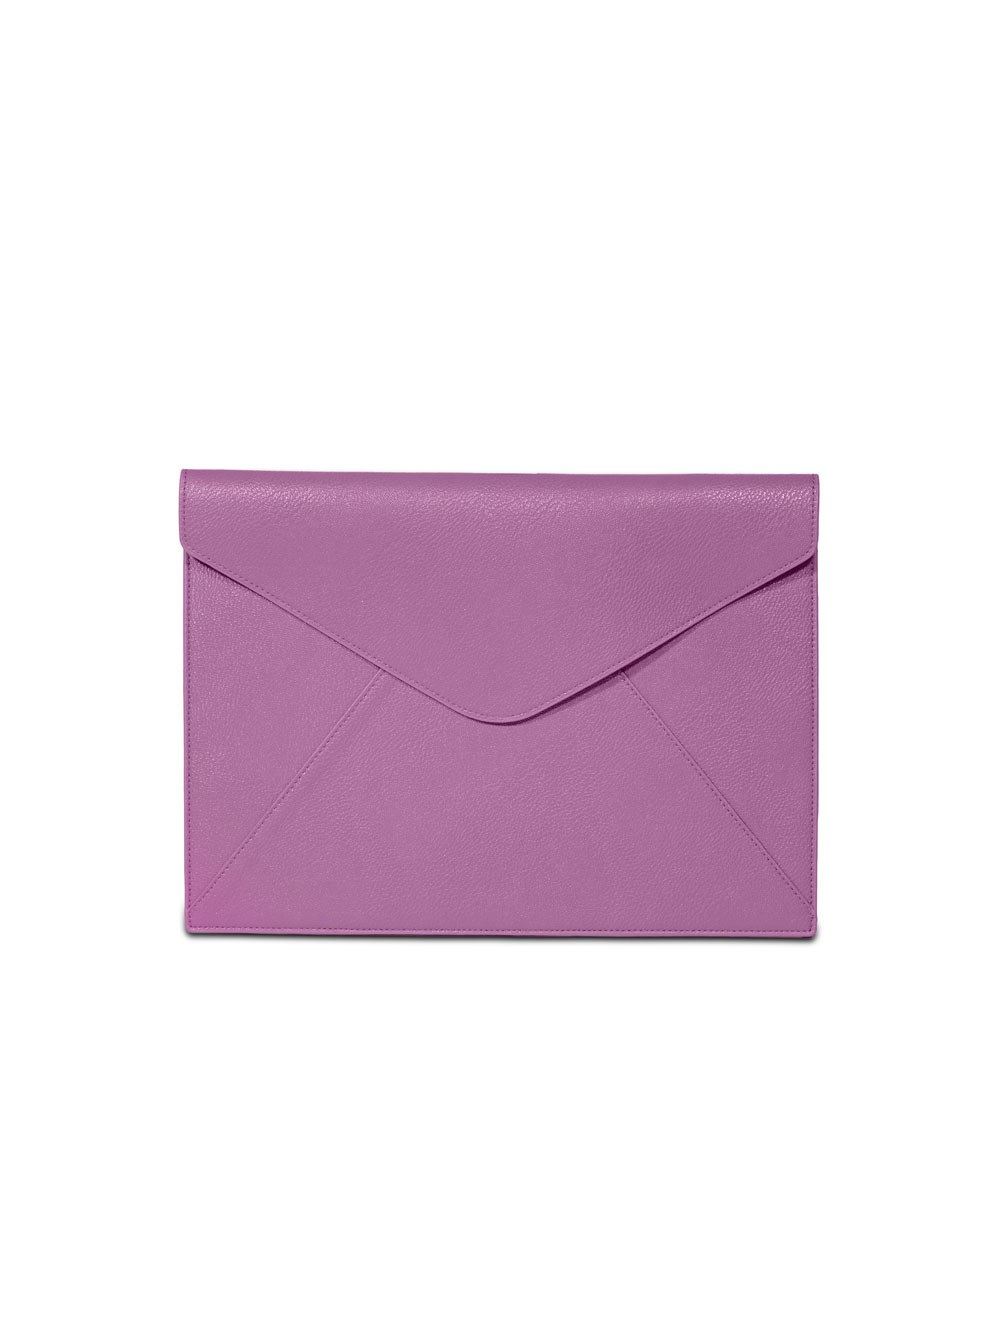 Document holder envelope A4 Fedor - Mauve